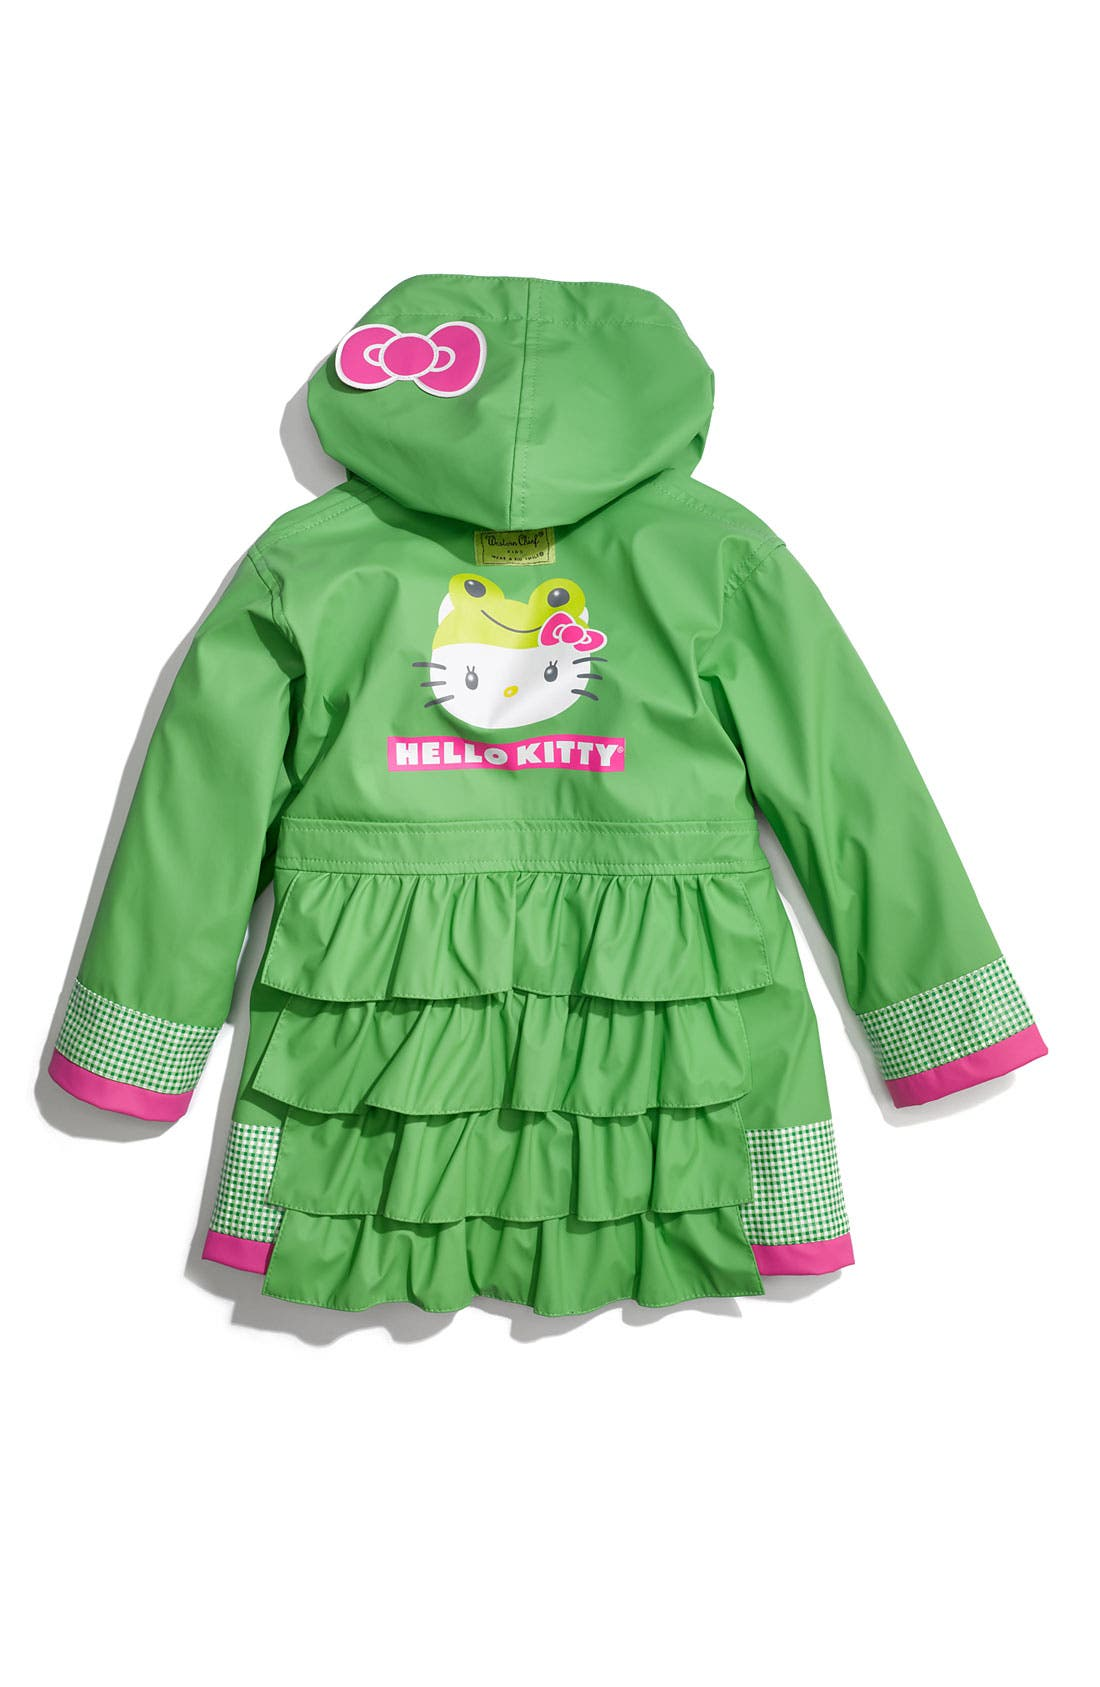 Alternate Image 3  - Western Chief 'Hello Kitty® Froggy' Raincoat (Toddler Girls & Little Girls)